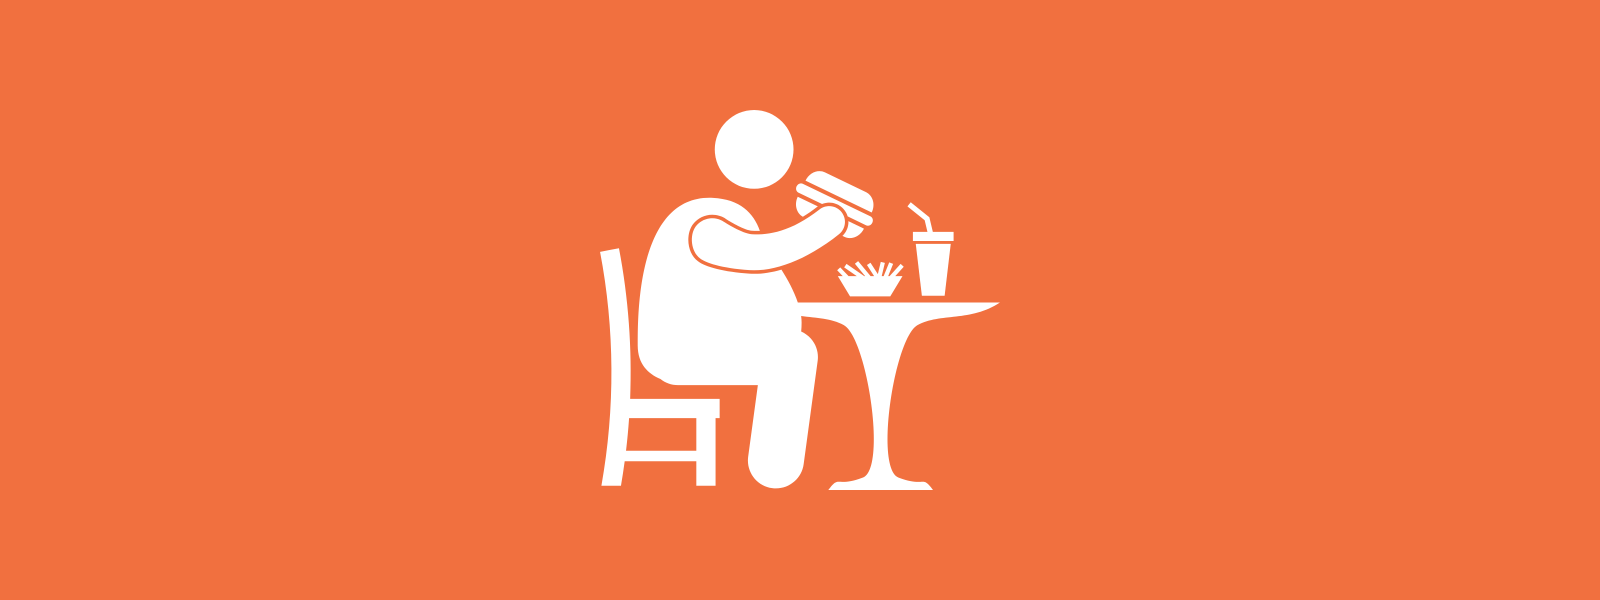 Icon background of person eating junk food